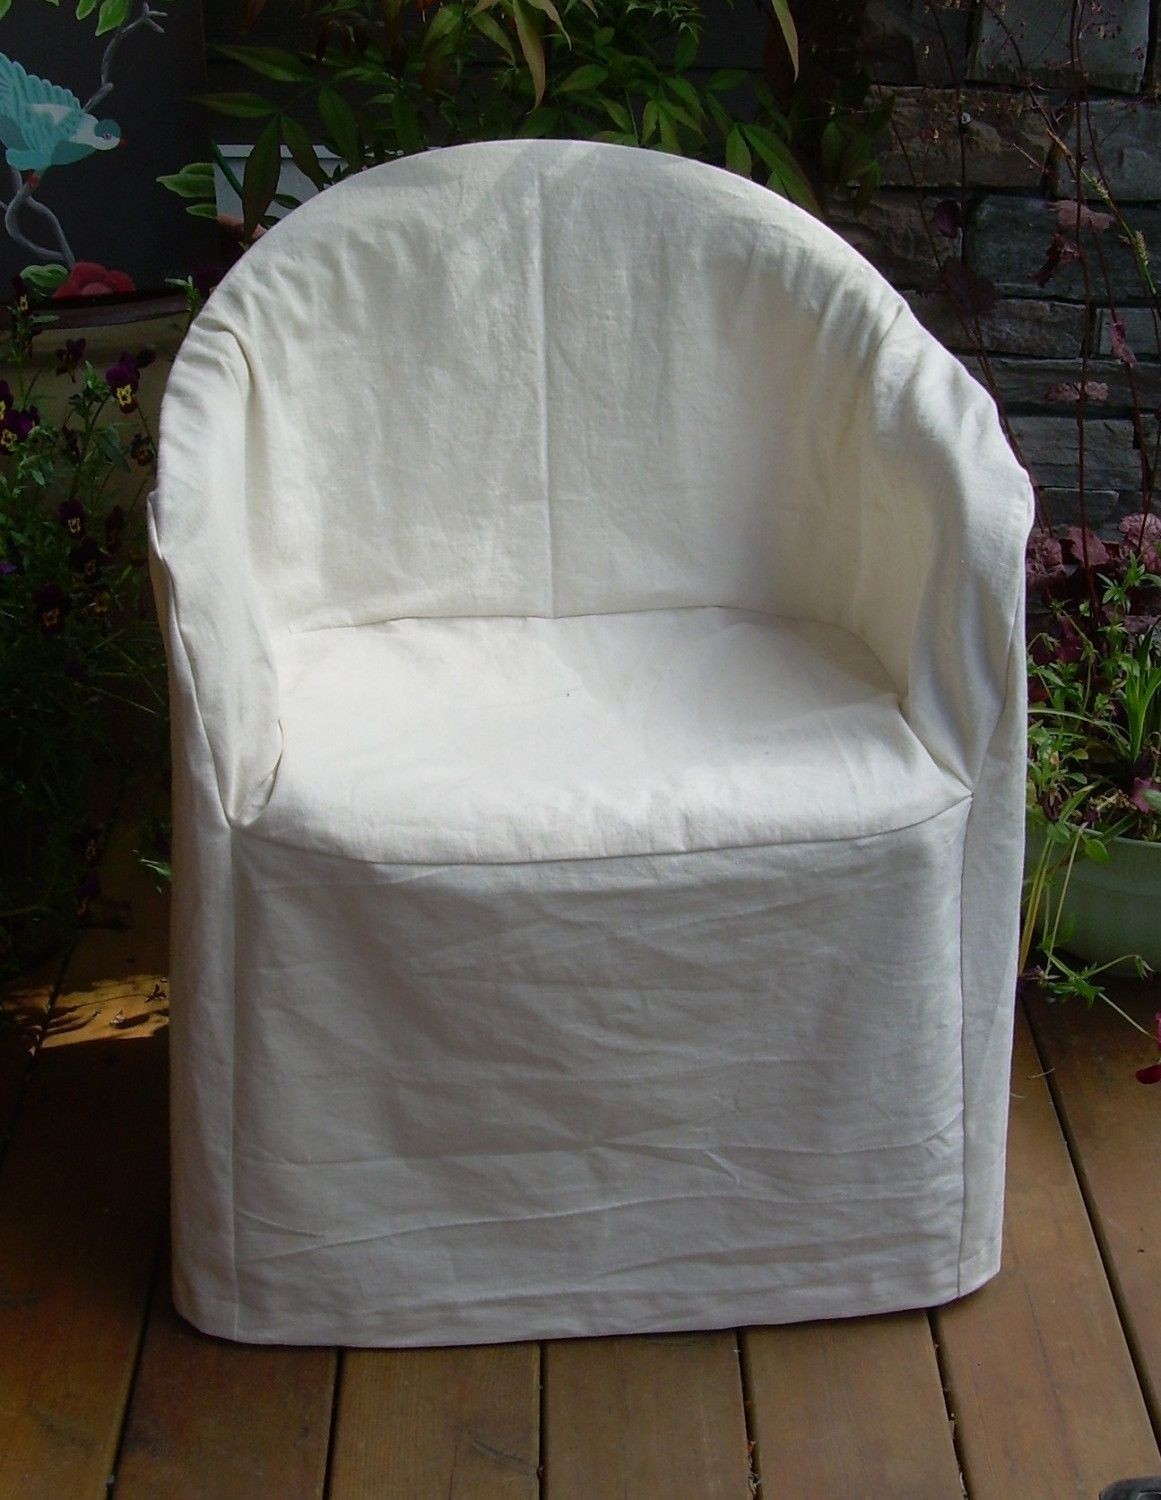 Furniture covers for chairs Slipcovers Custom Order Resin Chair Organic Plastic Patio Furniture Covers Ideas On Foter